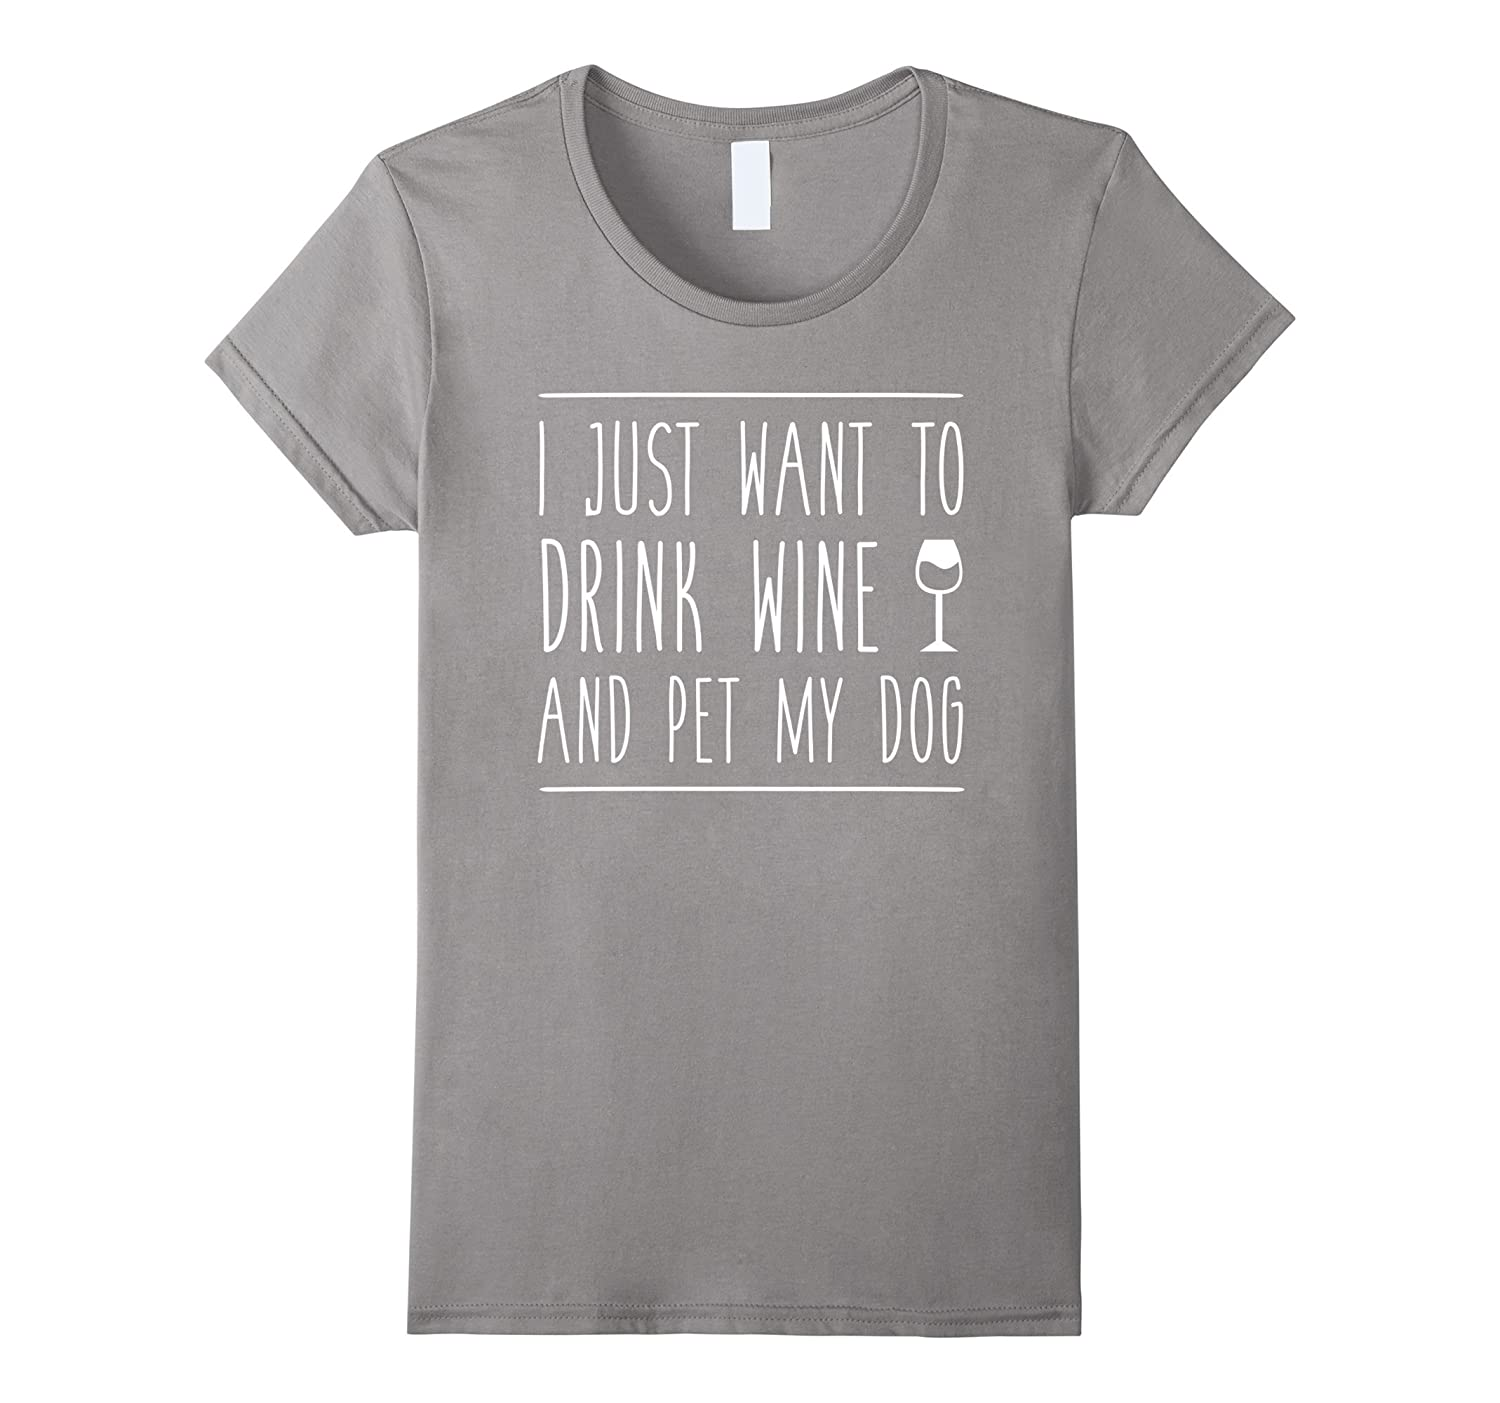 I Just Want to Drink Wine and Pet My Dog Funny Tee